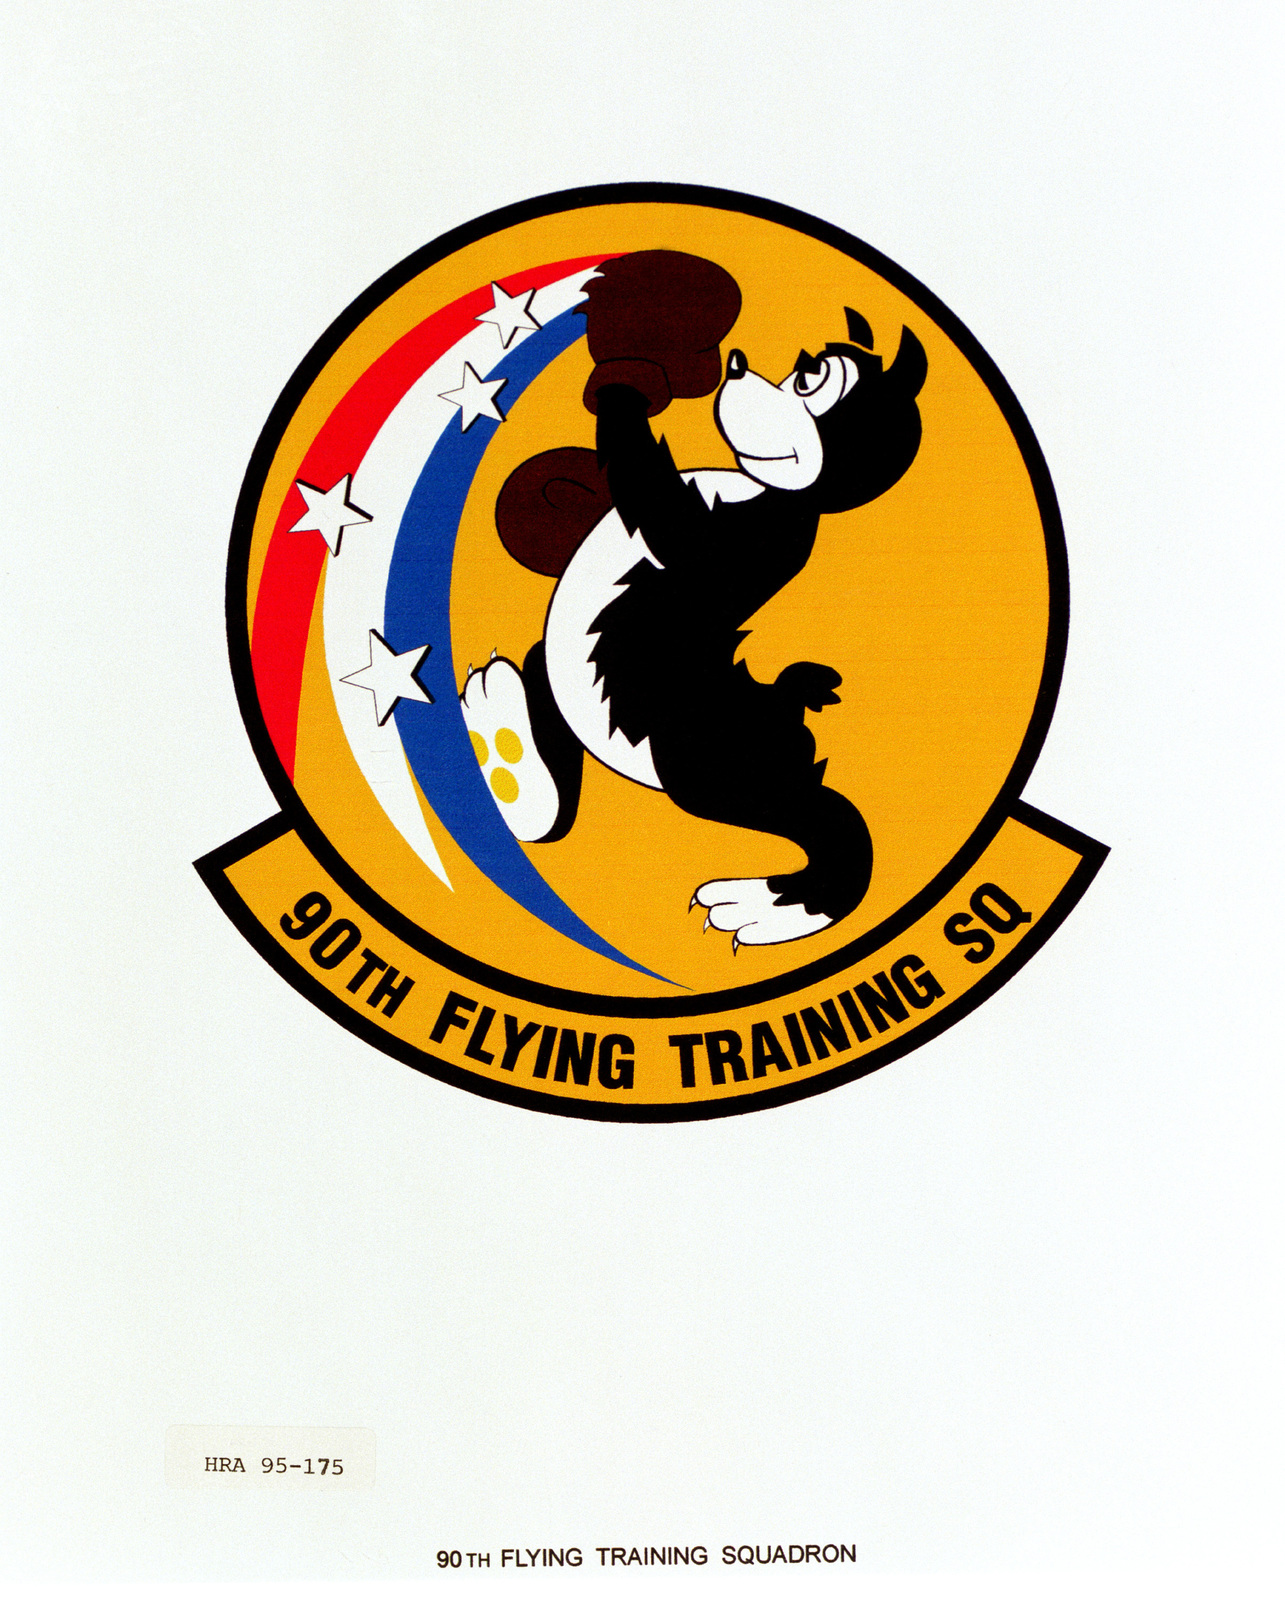 Approved Insignia for the 90th Flying Training Squadron. Exact Date Shot Unknown